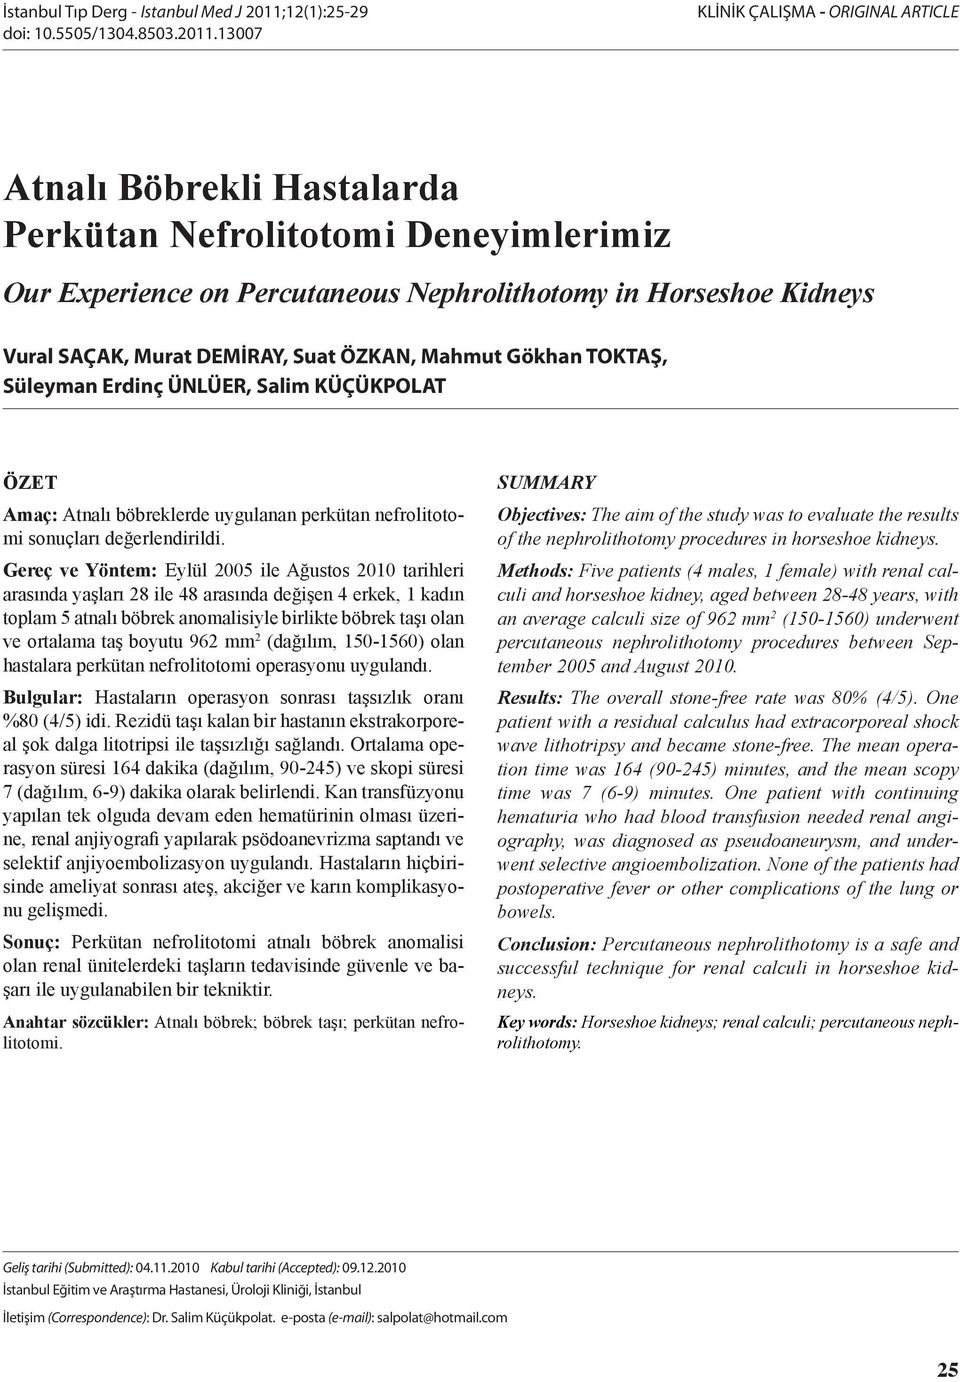 1007 KLİNİK ÇALIŞMA - ORIGINAL ARTICLE Atnalı Böbrekli Hastalarda Perkütan Nefrolitotomi Deneyimlerimiz Our Experience on Percutaneous Nephrolithotomy in Horseshoe Kidneys Vural SAÇAK, Murat DEMİRAY,